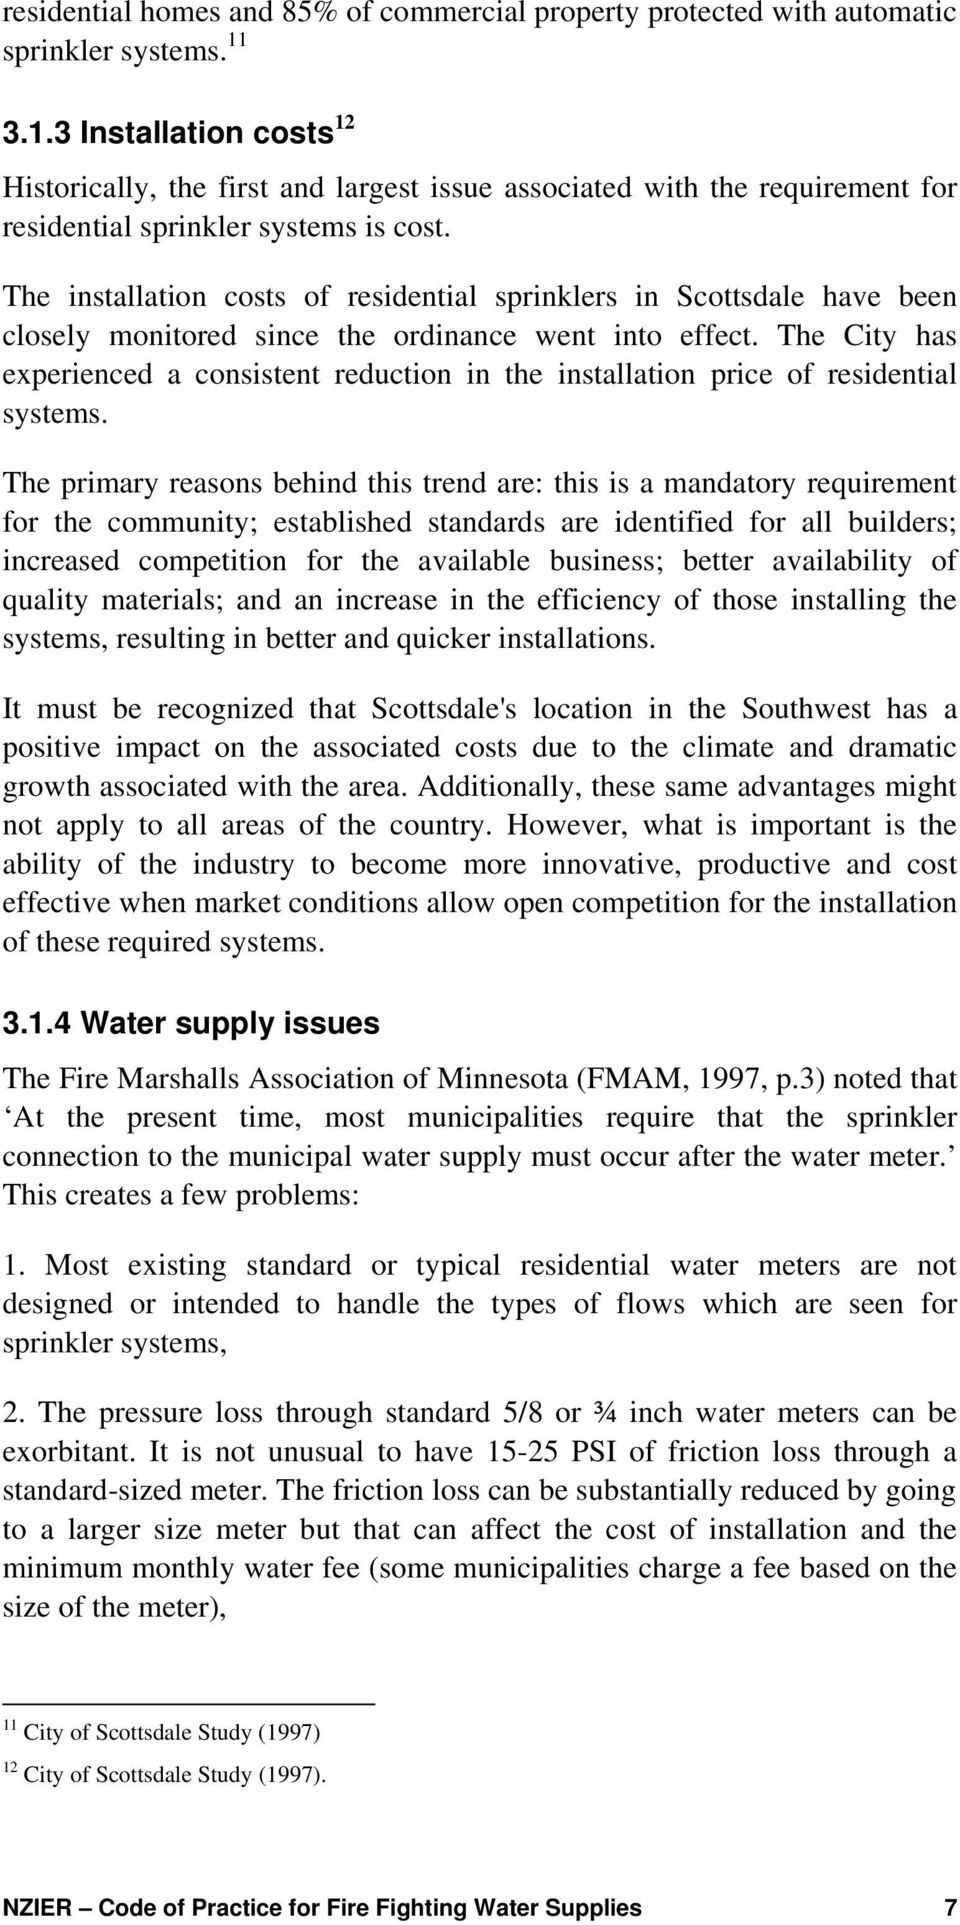 The installation costs of residential sprinklers in Scottsdale have been closely monitored since the ordinance went into effect.